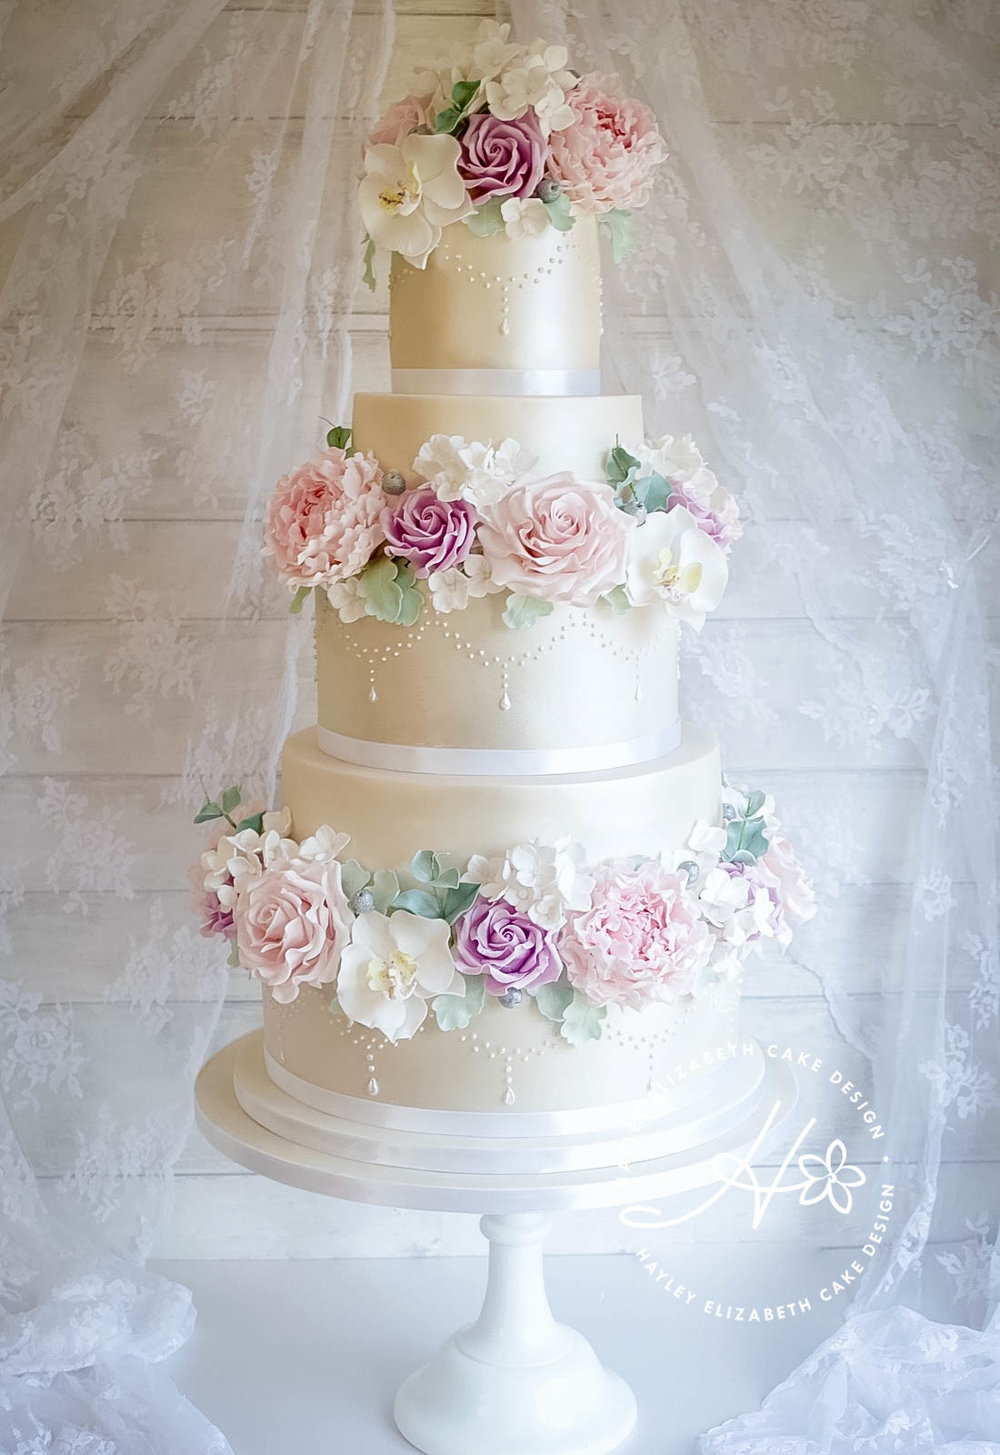 ivory-shimmer-wedding-cake-withroses-and-orchids.jpg